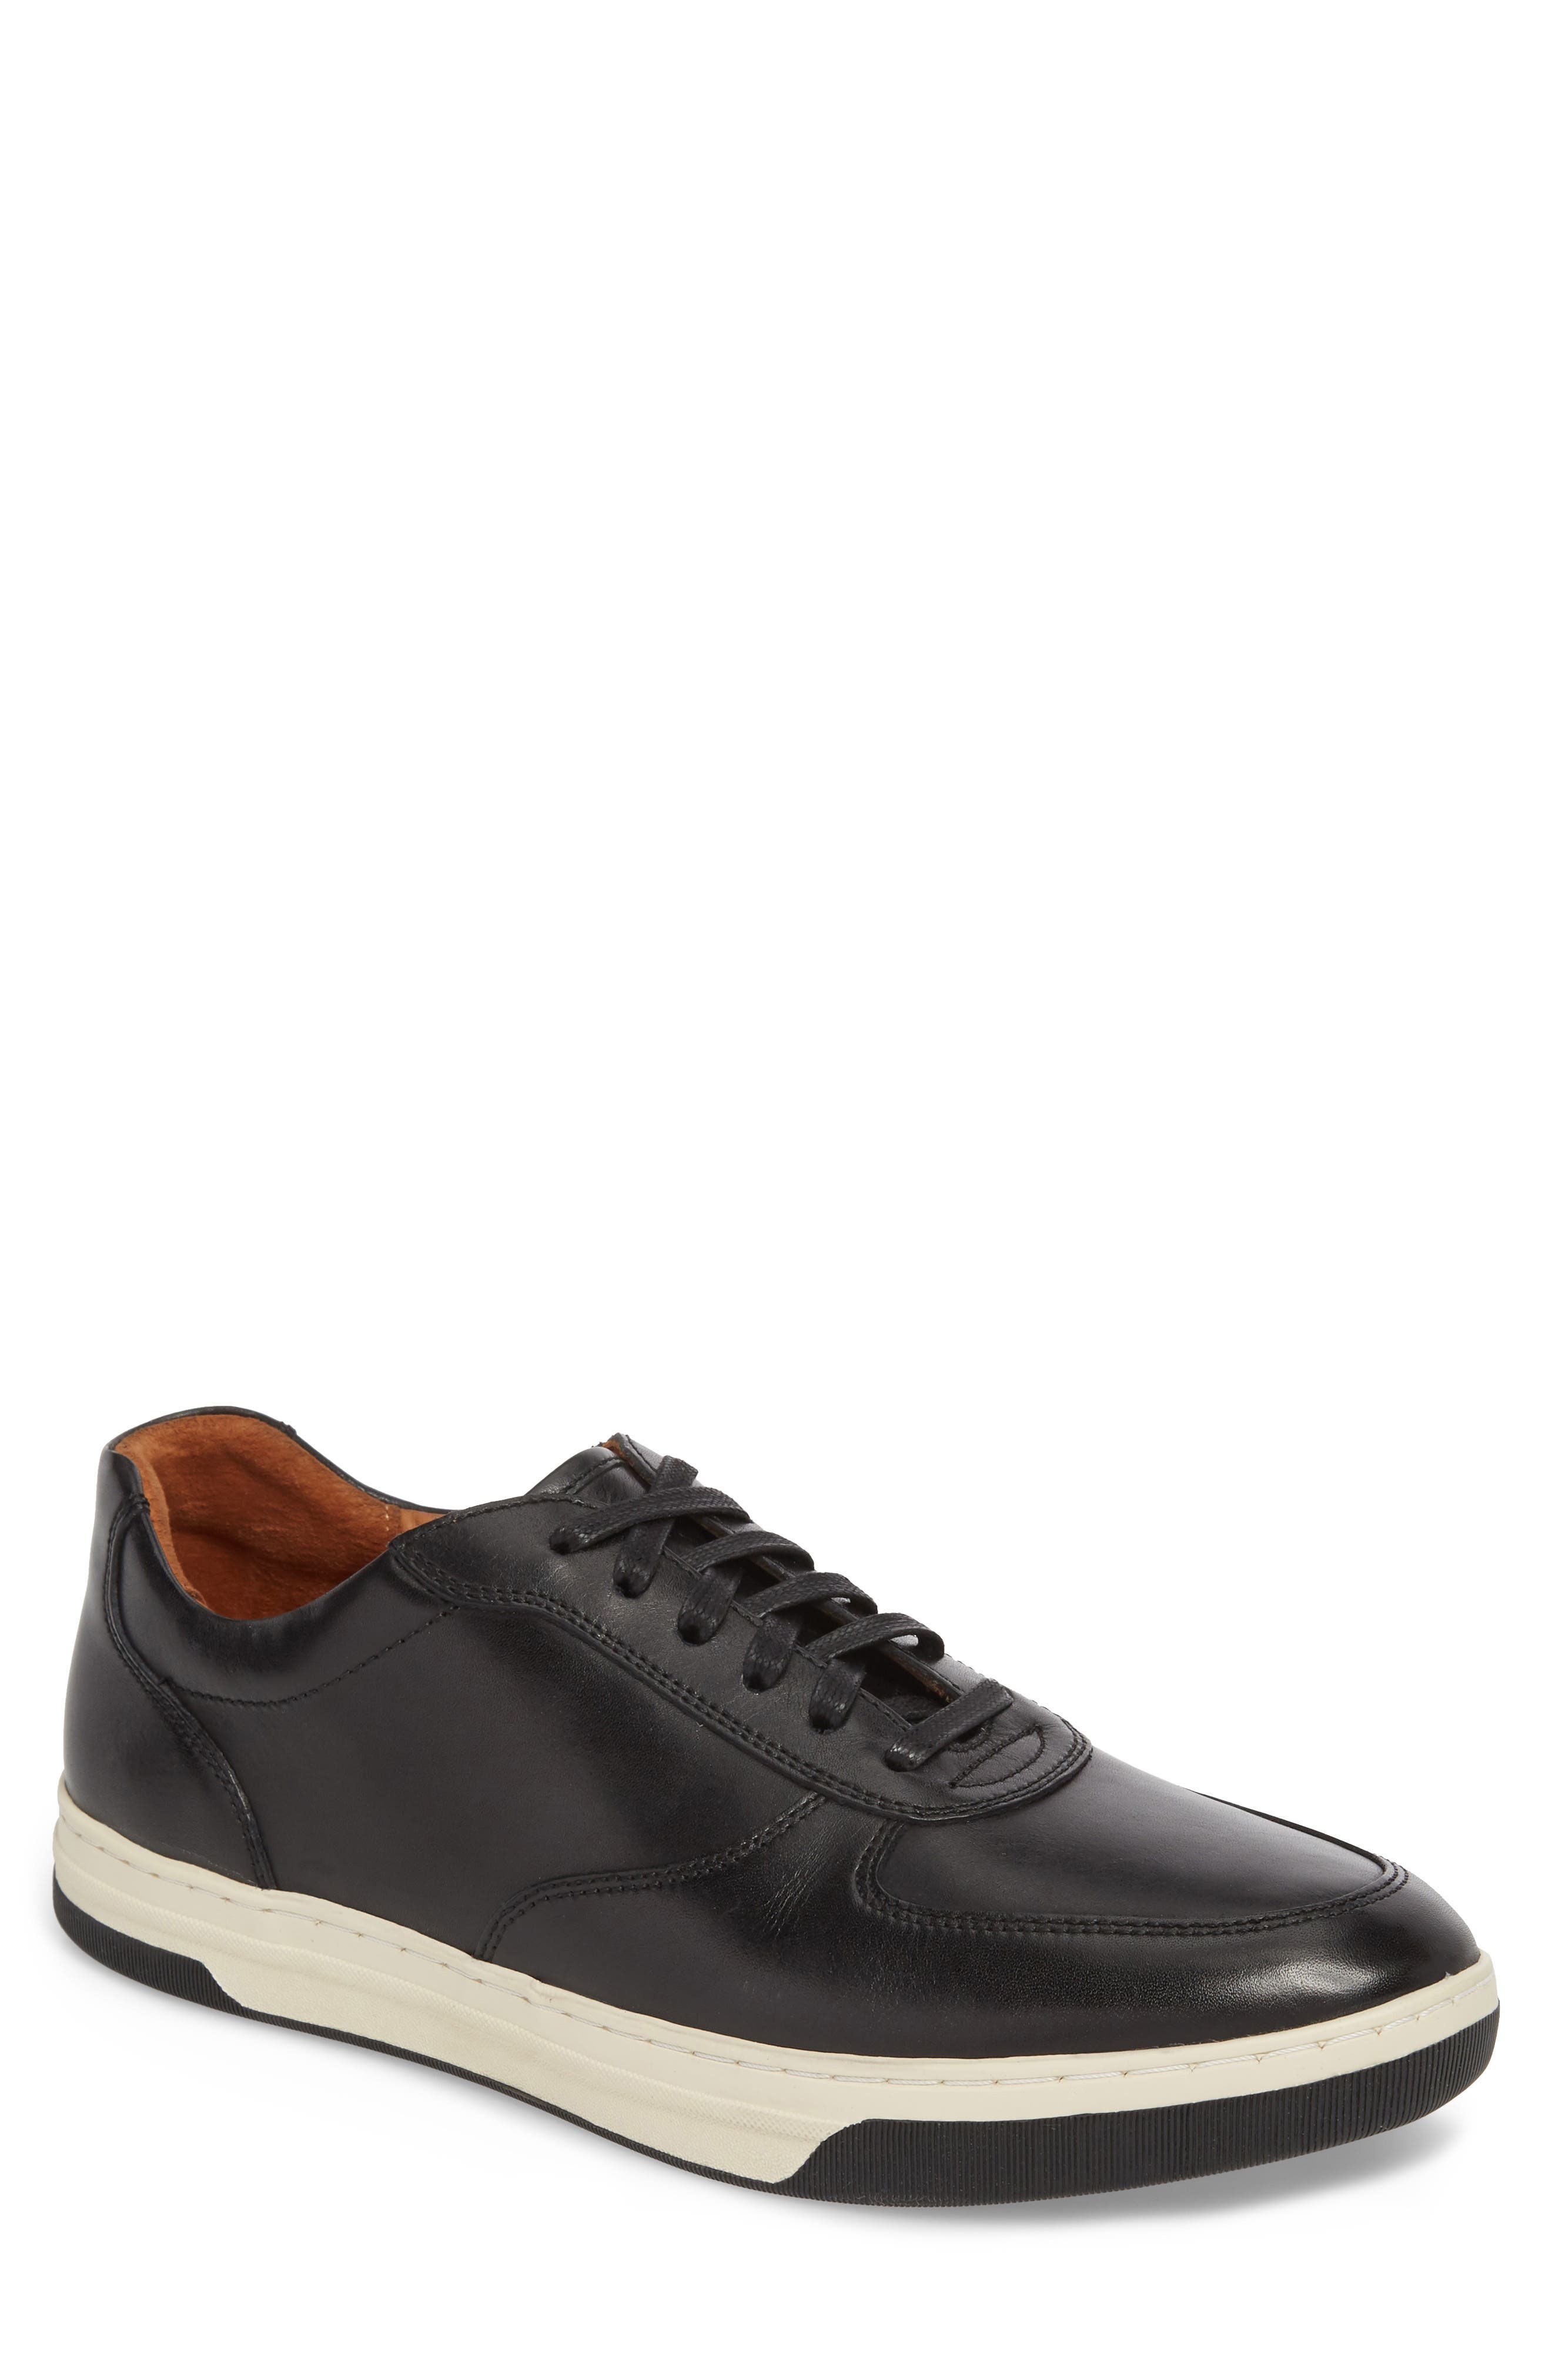 Fenton Low Top Sneaker,                         Main,                         color, Black Leather